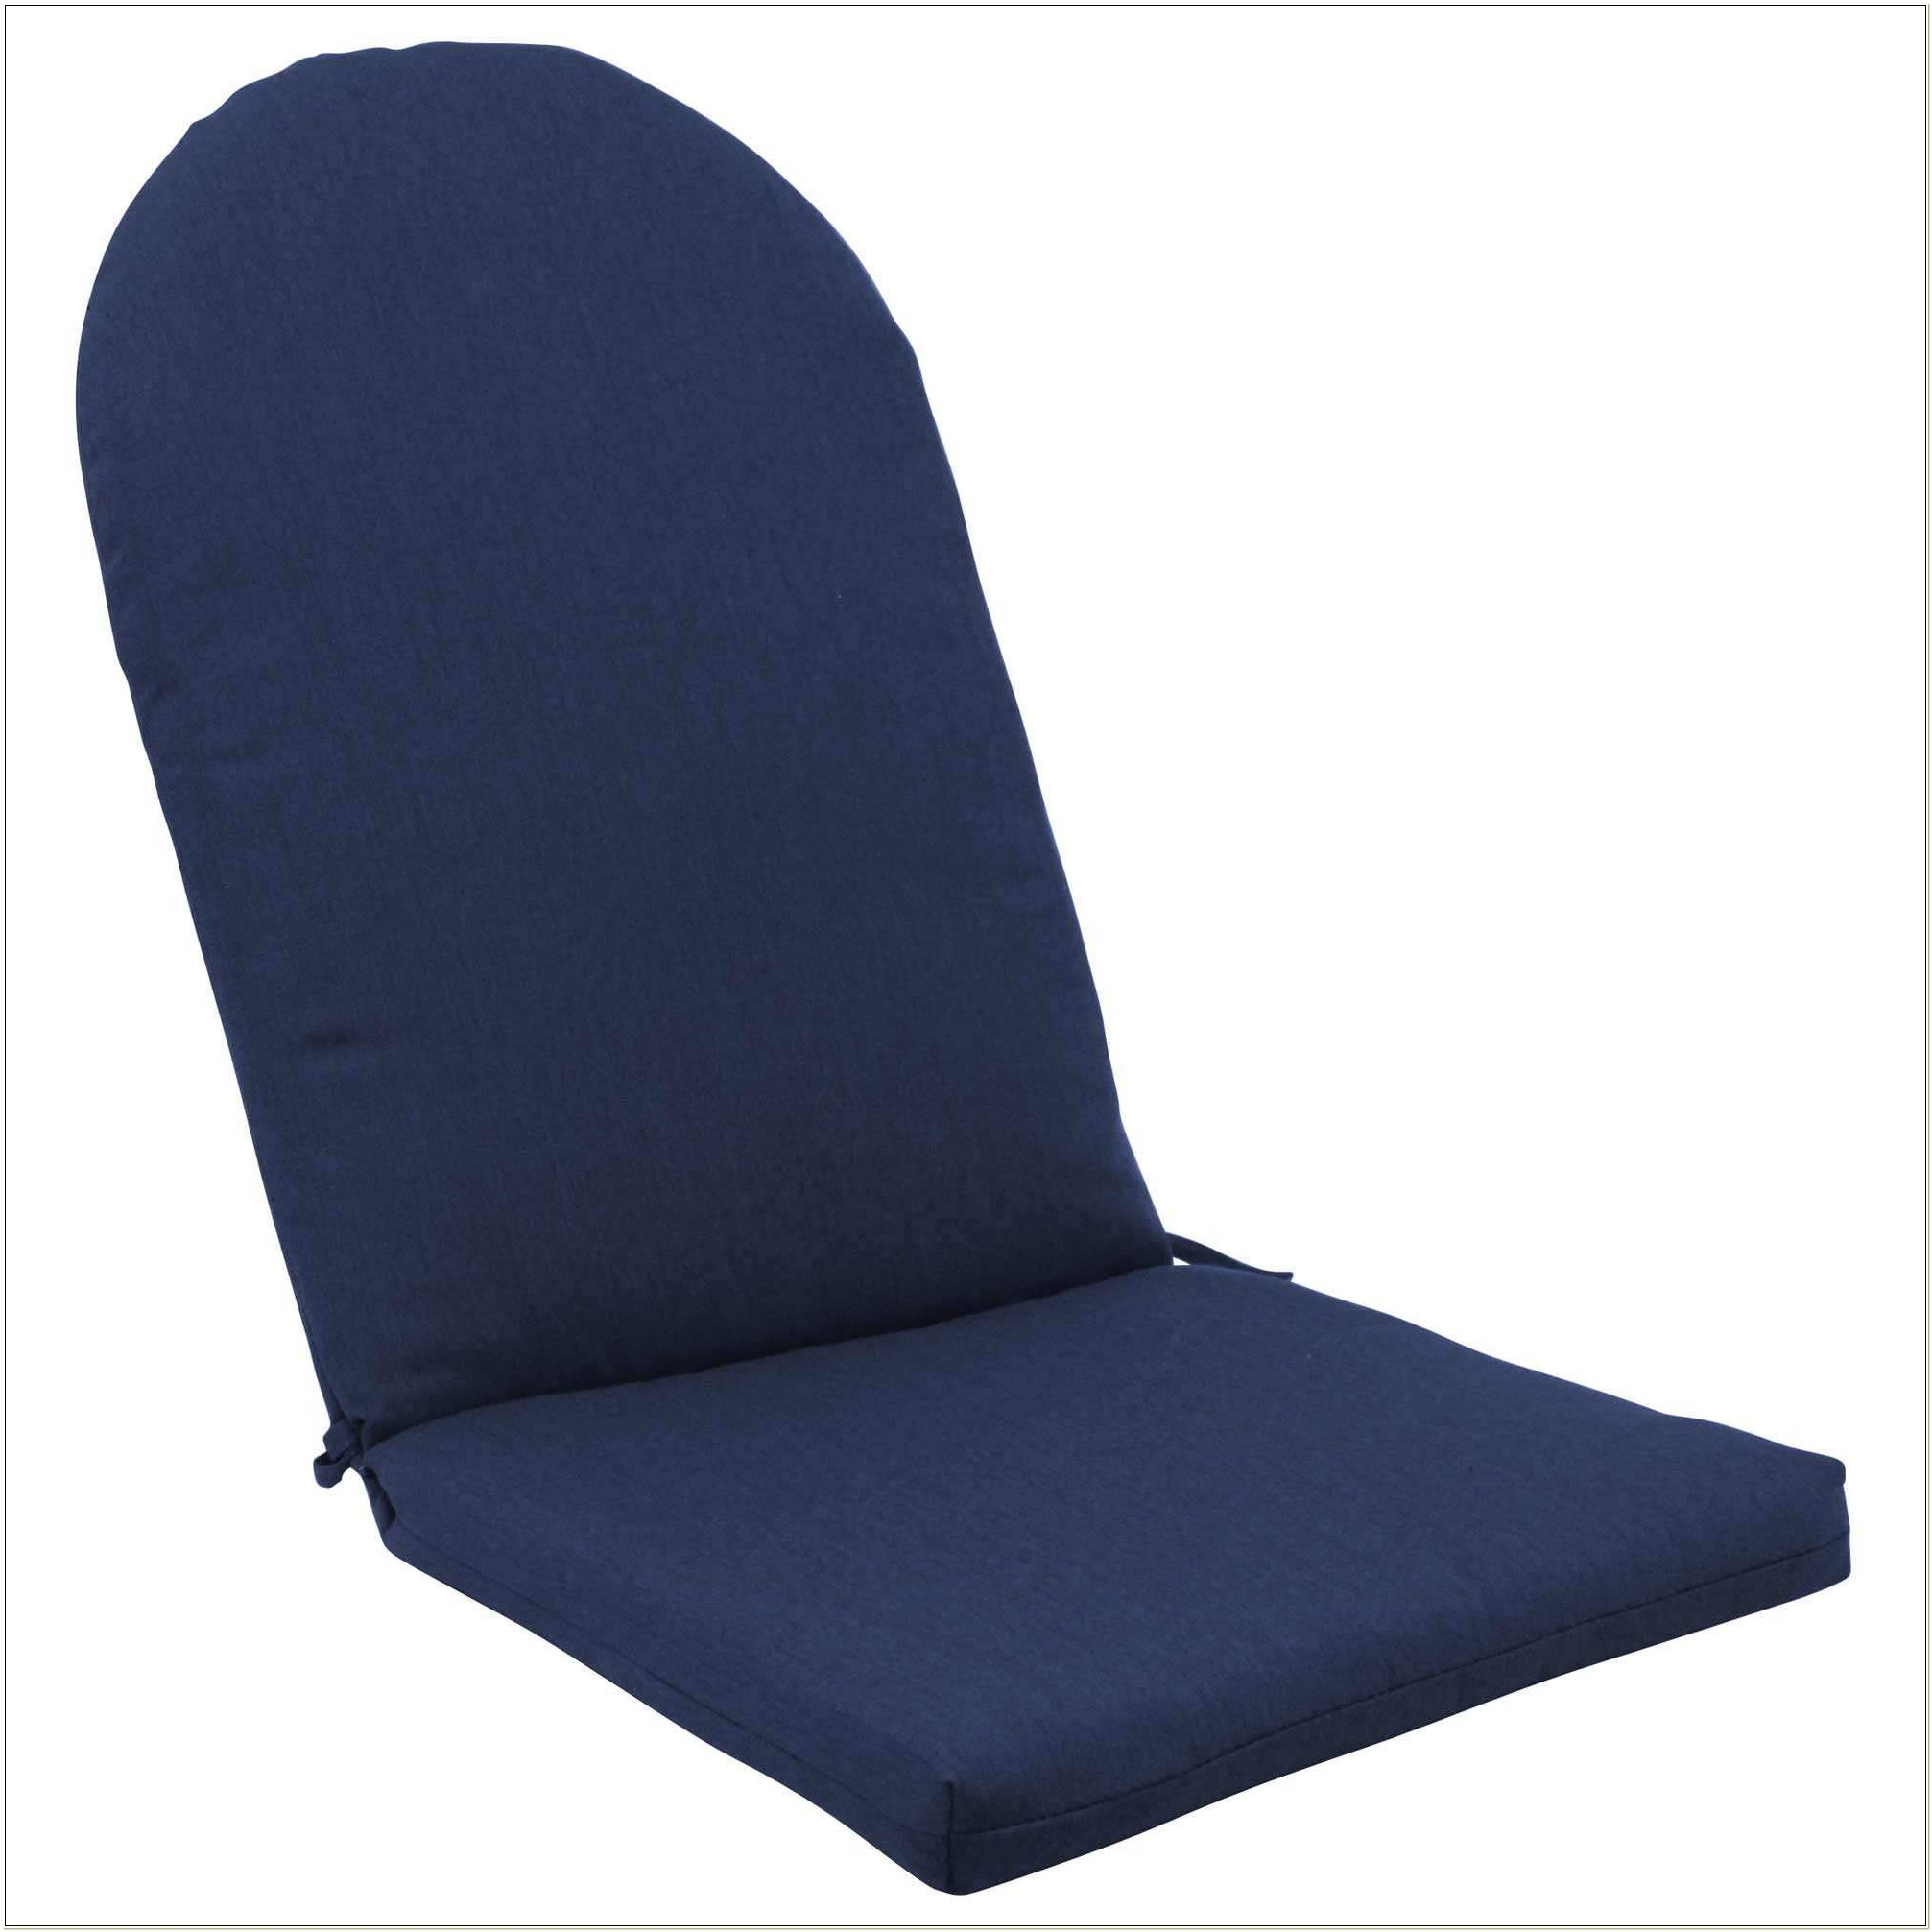 Navy Blue Adirondack Chair Cushions